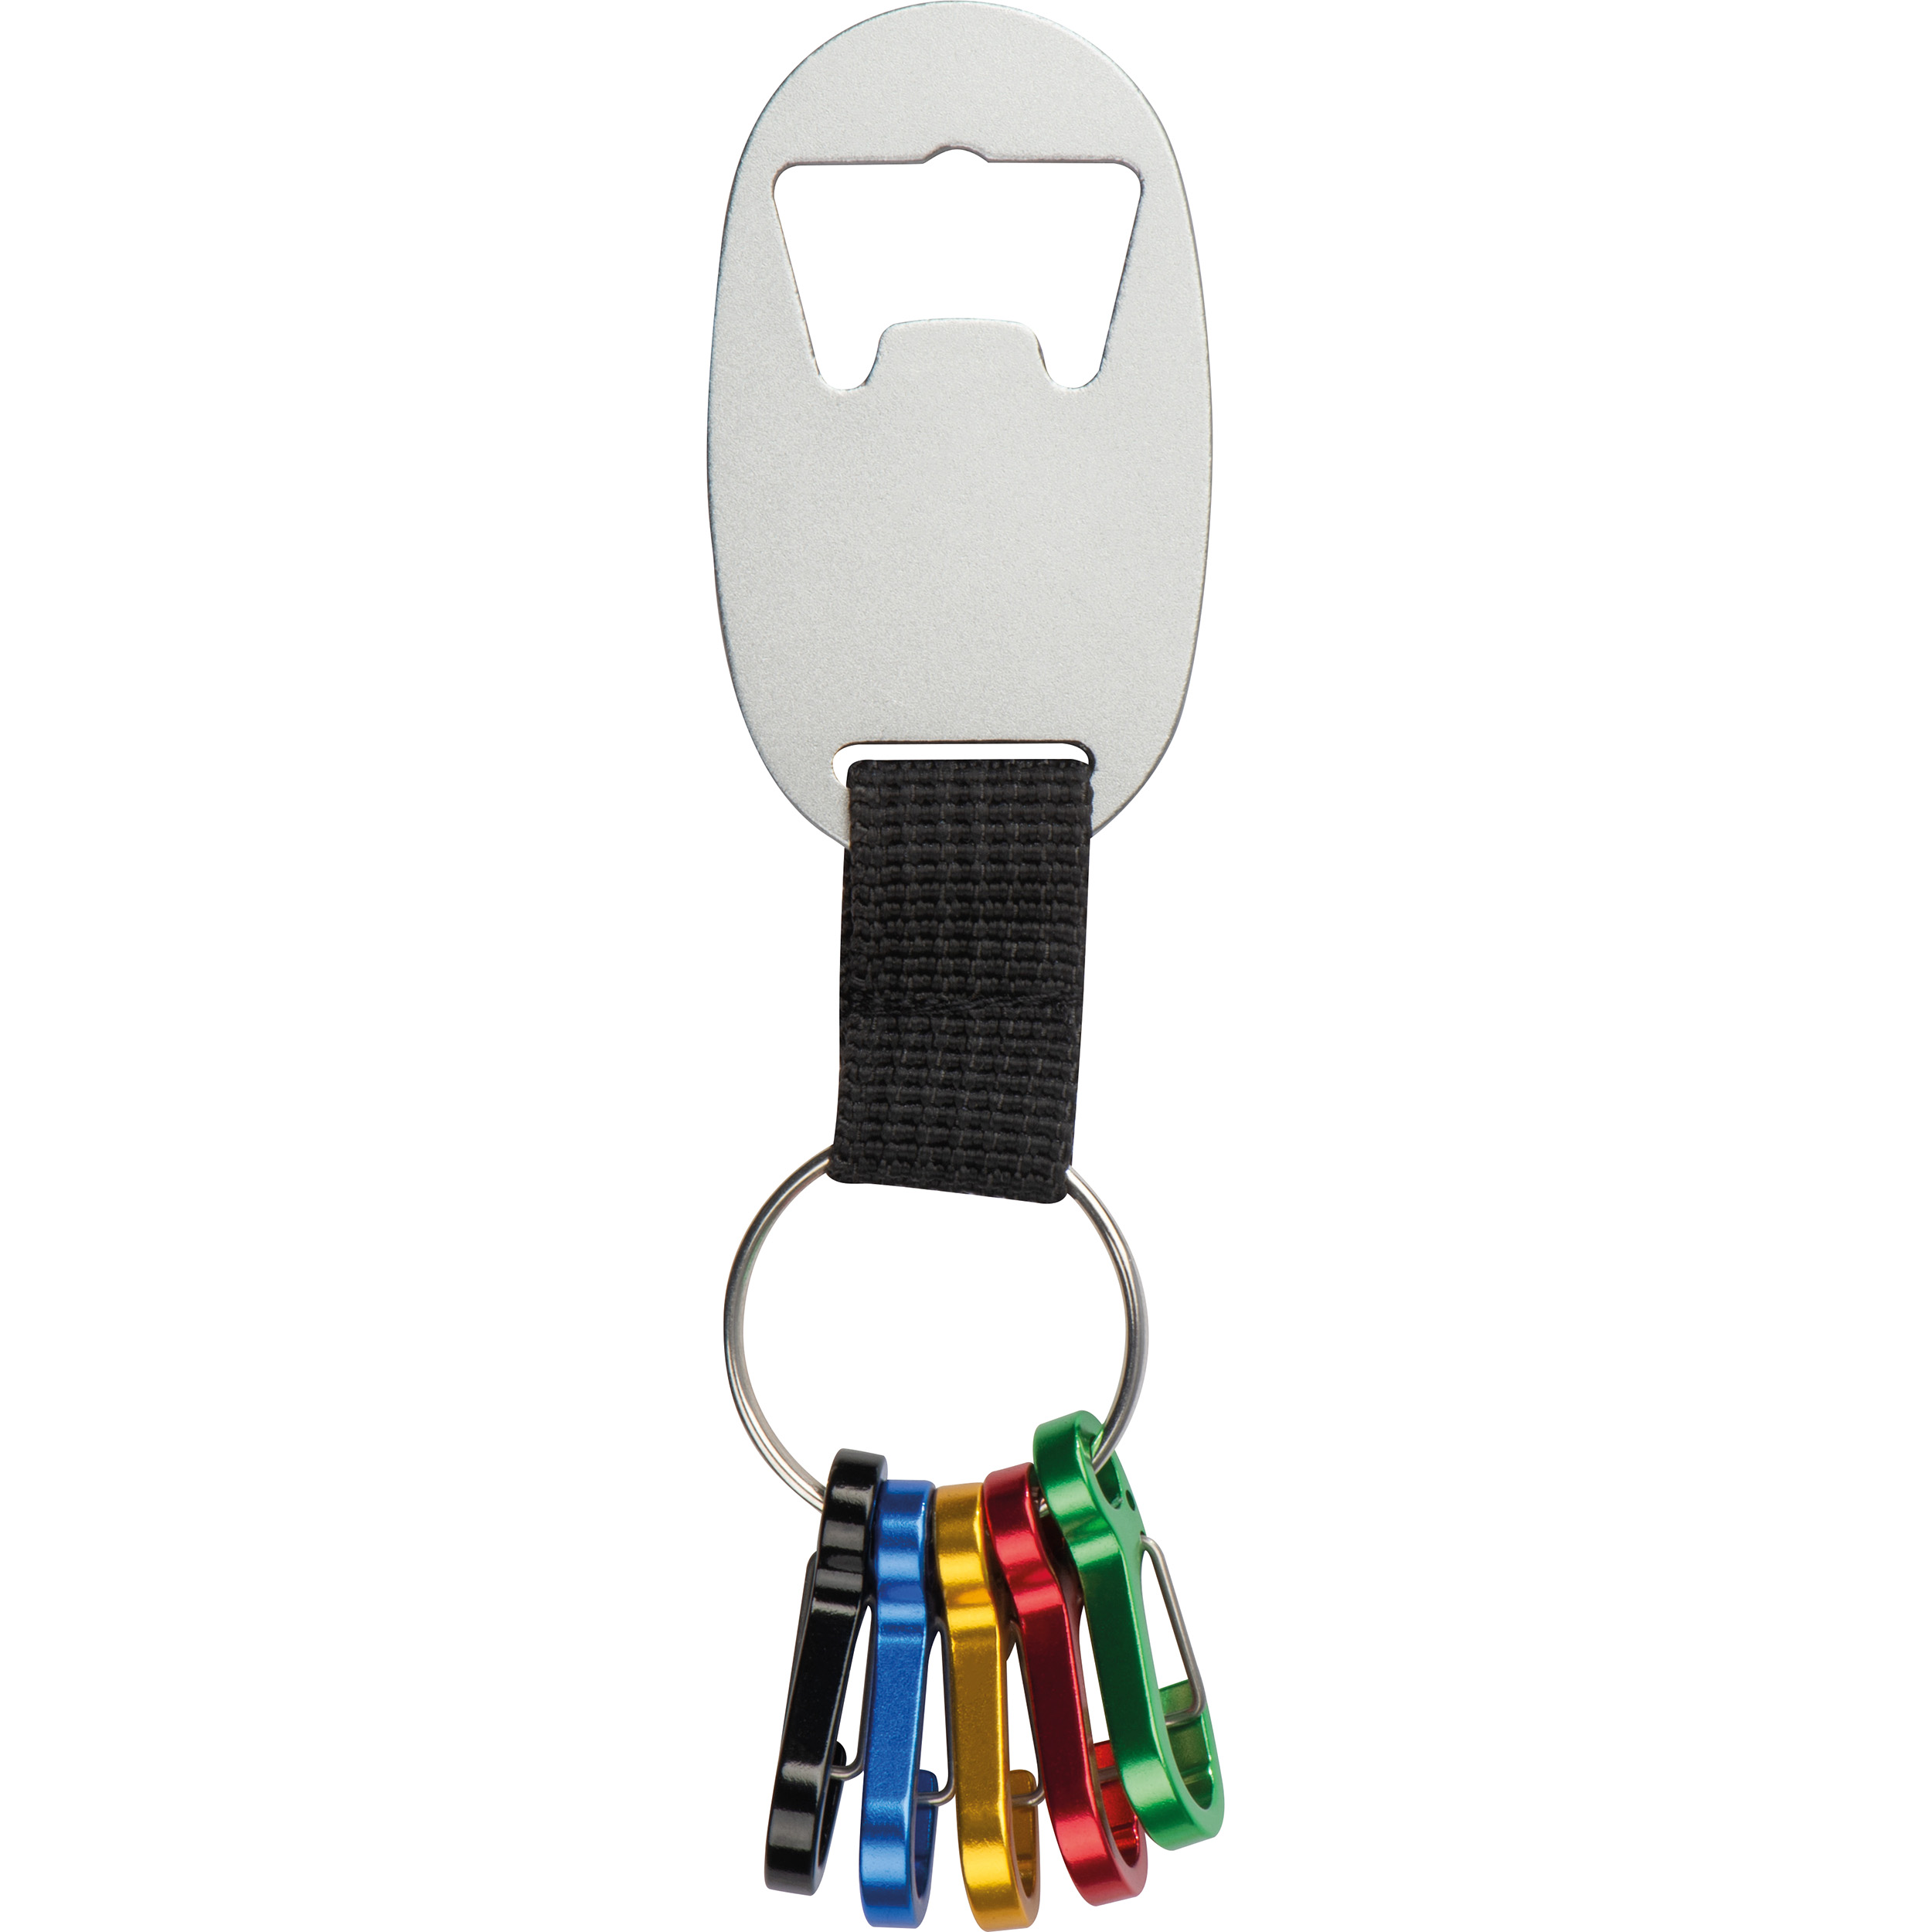 Keychain with bottle opener and 5 mini snap hooks